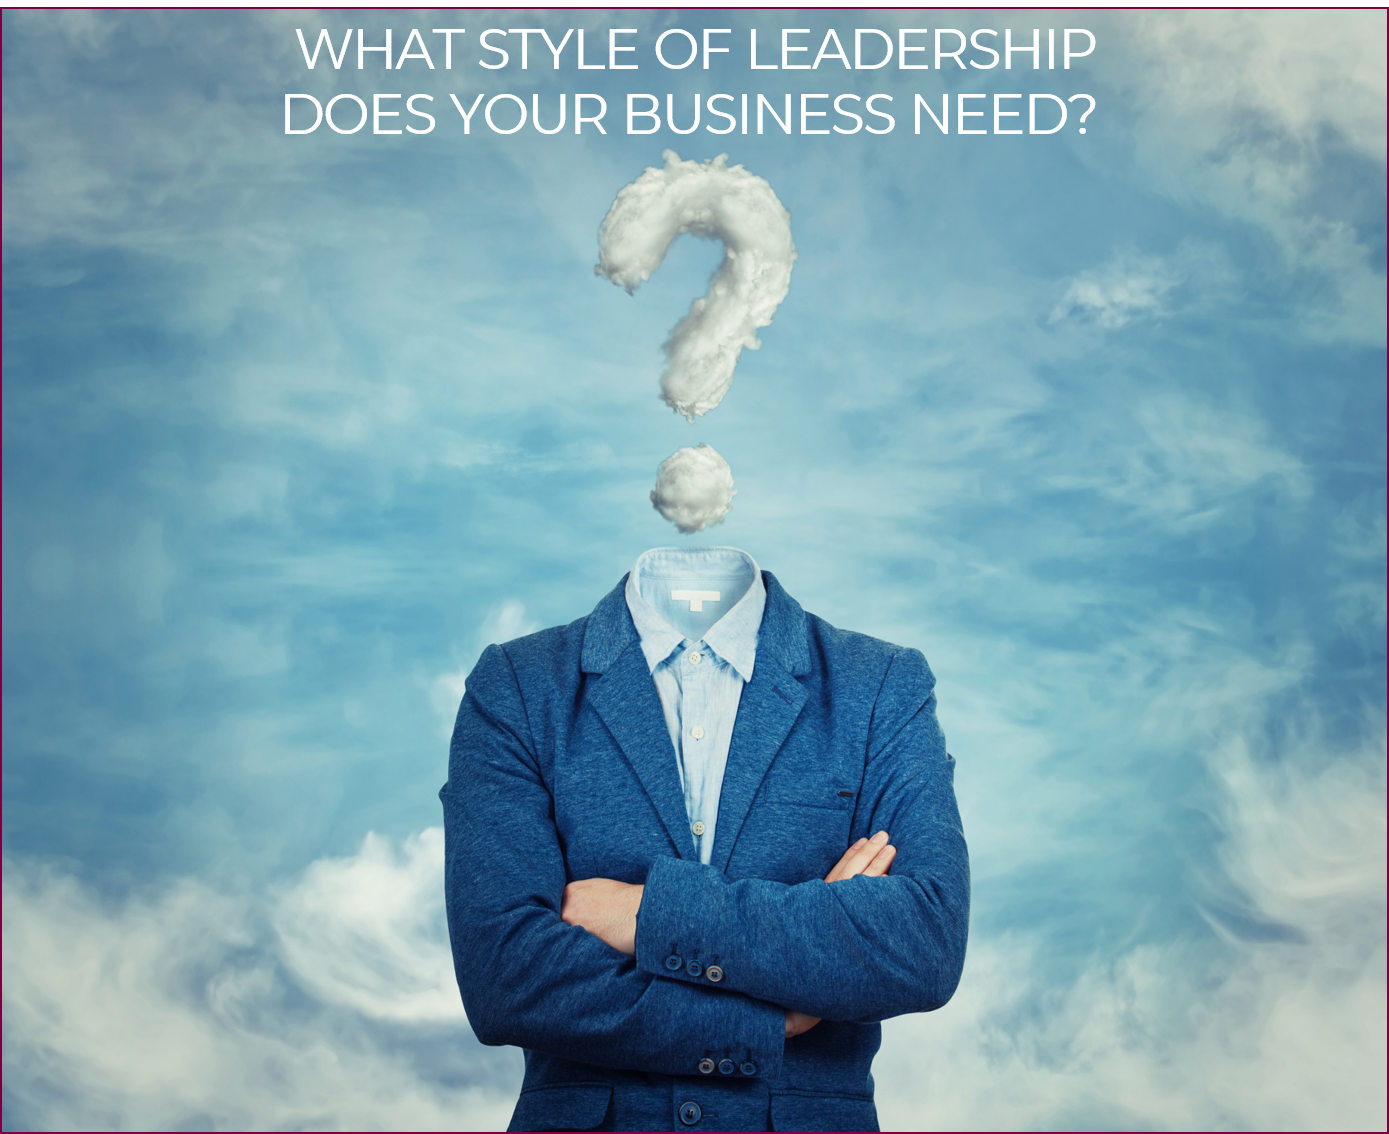 What kind of leadership does your business need?